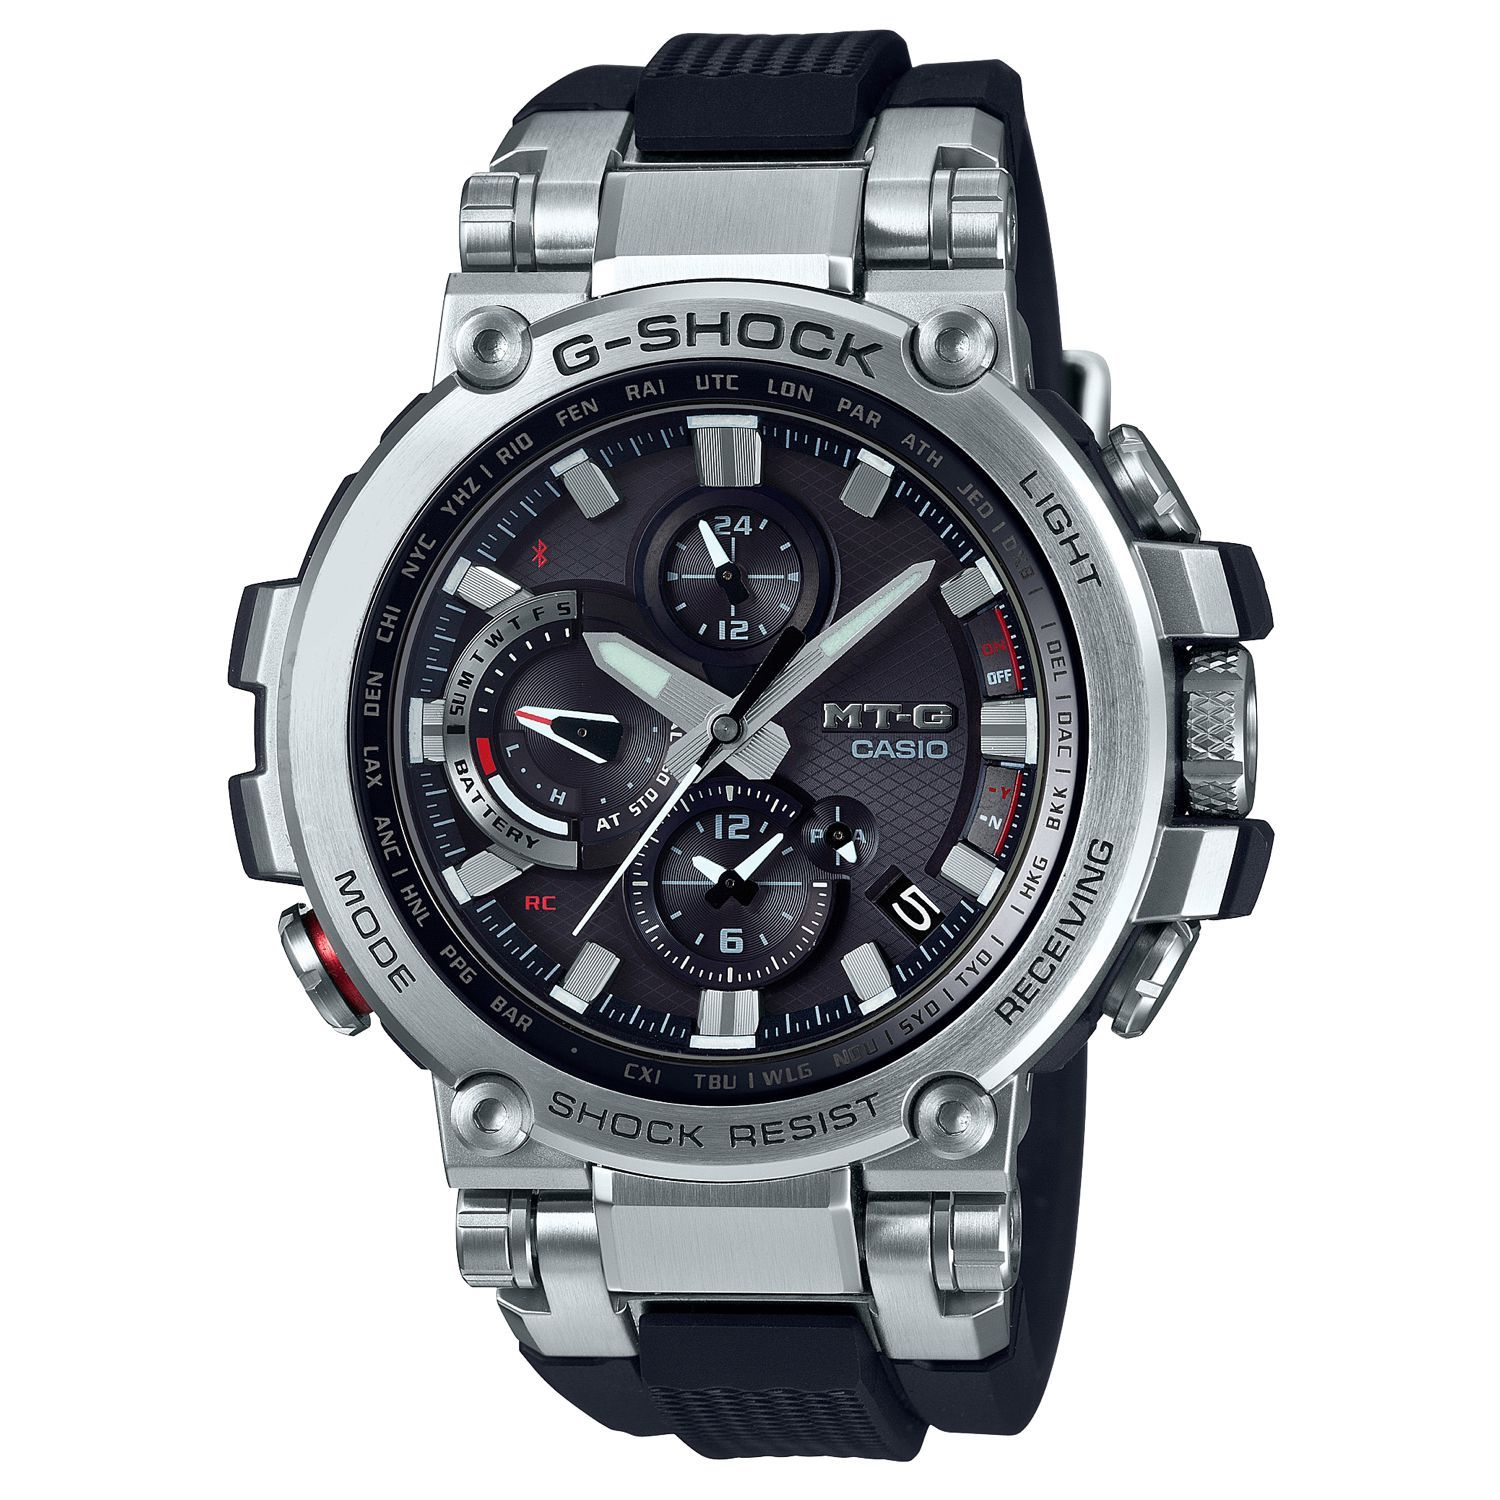 e85a6453b128 11 Best G-Shock Watches to Buy in 2019 - Cool Casio G-Shock Watches